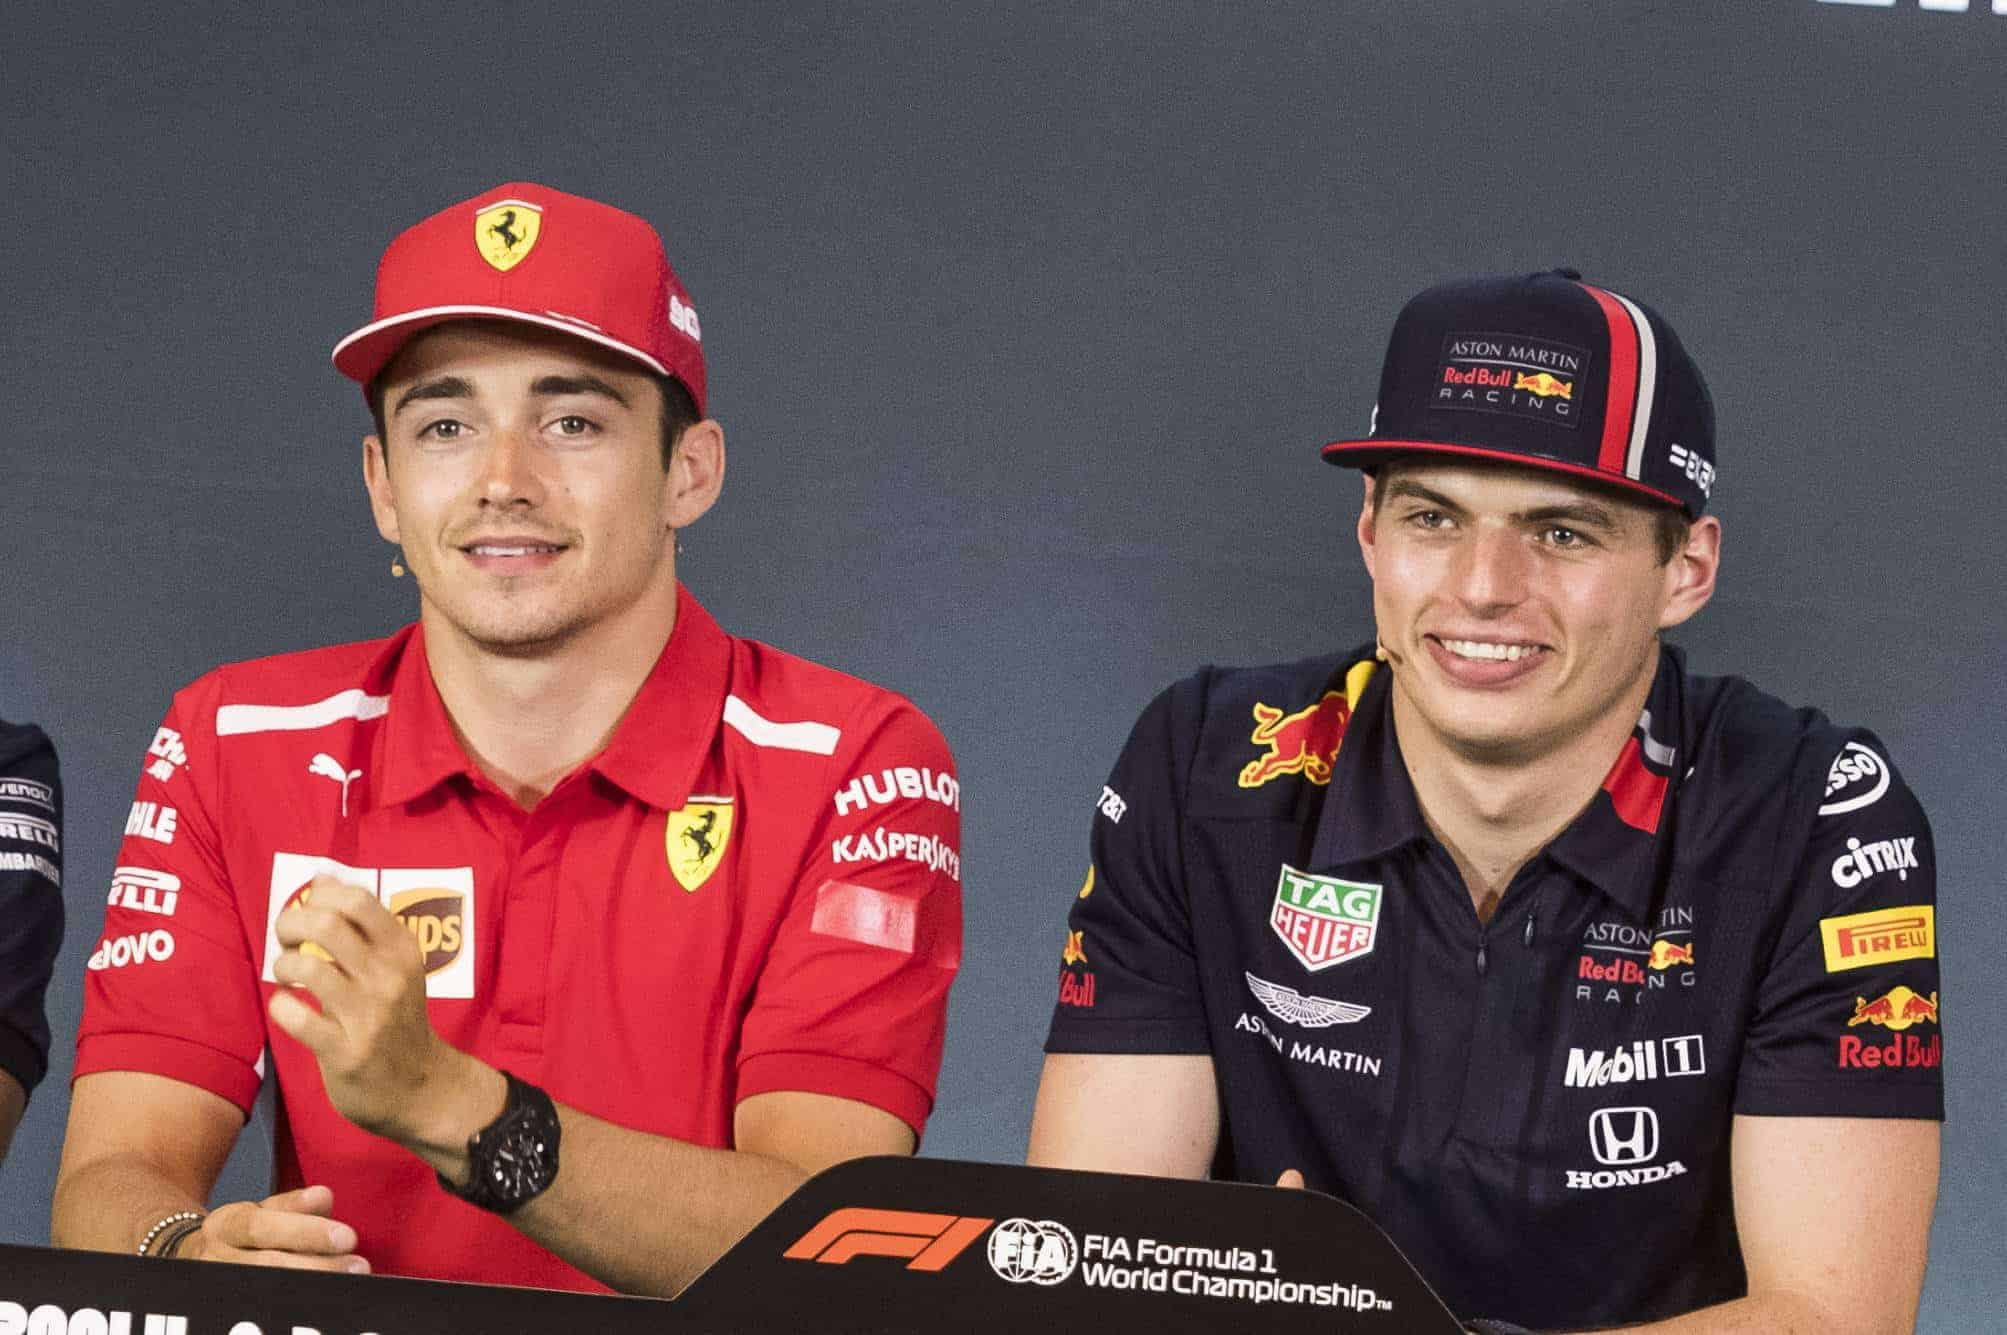 Leclerc Verstappen Austrian GP F1 2019 press conference Photo Red Bull